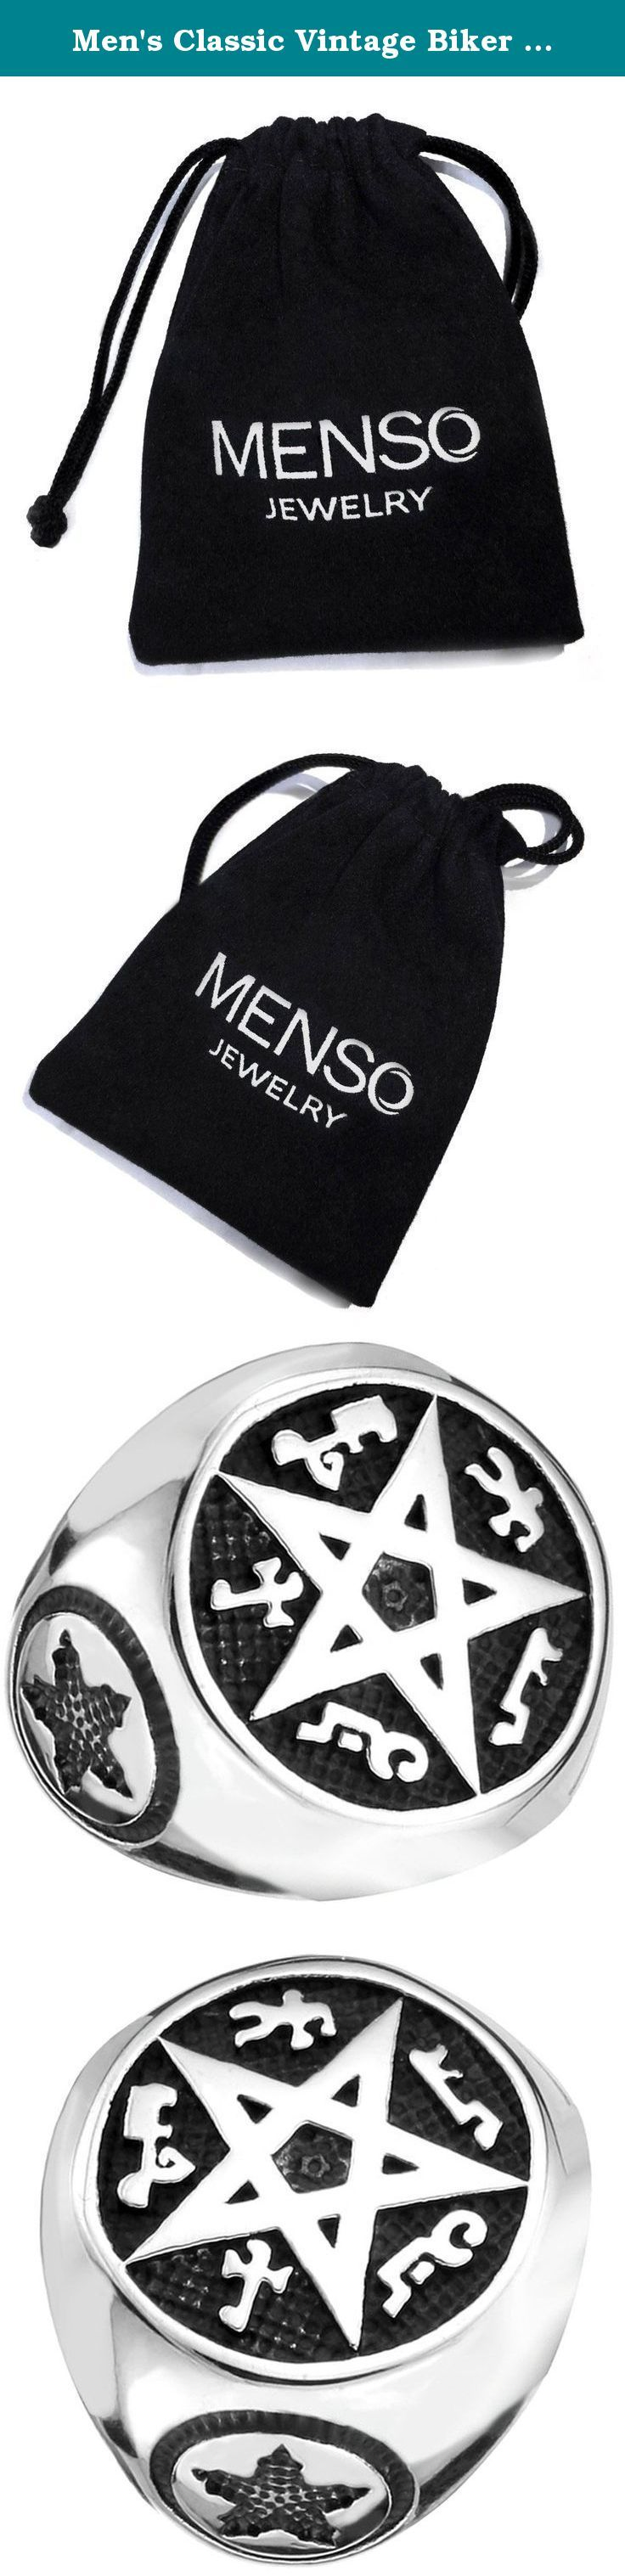 Men's Classic Vintage Biker Pentacle Pentagram Round Signet Gothic Stainless Steel Ring Band Silver Black Size 9. MENSO - High quality Jewelry Discover the MENSO Collection of jewelry. The selection of high-quality jewelry featured in the MENSO Collection offers Great values at affordable Price, they mainly made of high quality Stainless Steel, Tungsten, Silver and Leather. We uphold the highest standard of integrity,professionalism and customer service. In addition to unique...